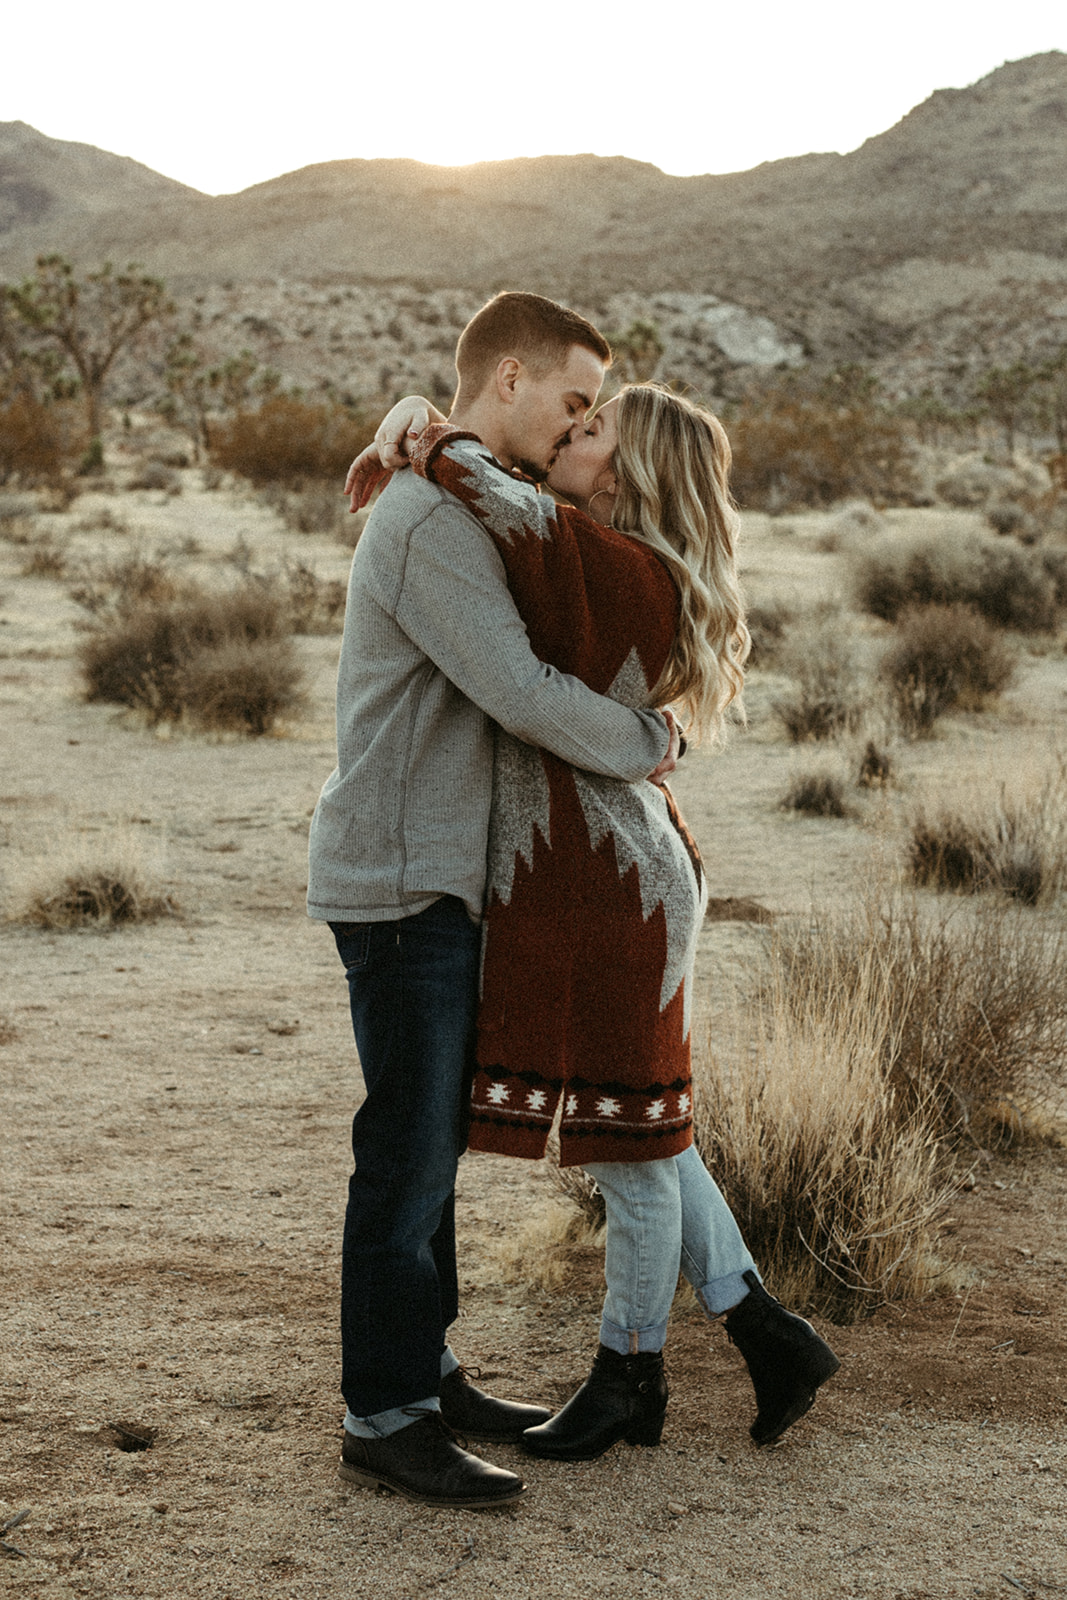 UtopicLovers film photo Mariage Elopement 2019 213 1 - Une séance couple Boho en Californie.